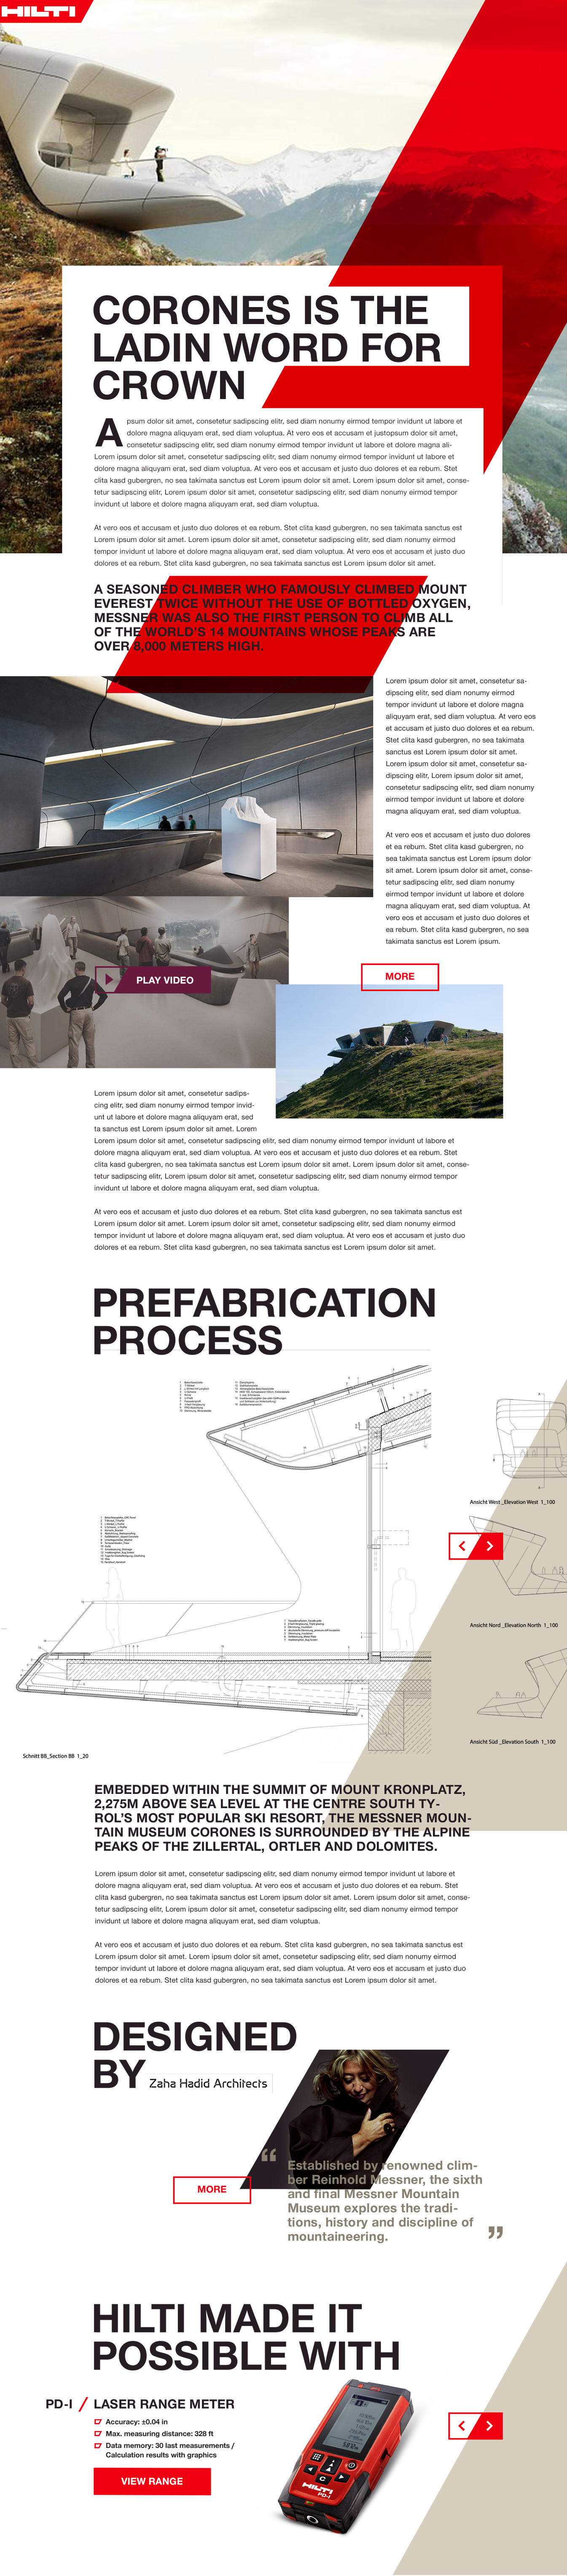 15_12_17_hilti_design_editorial_article_v4.png